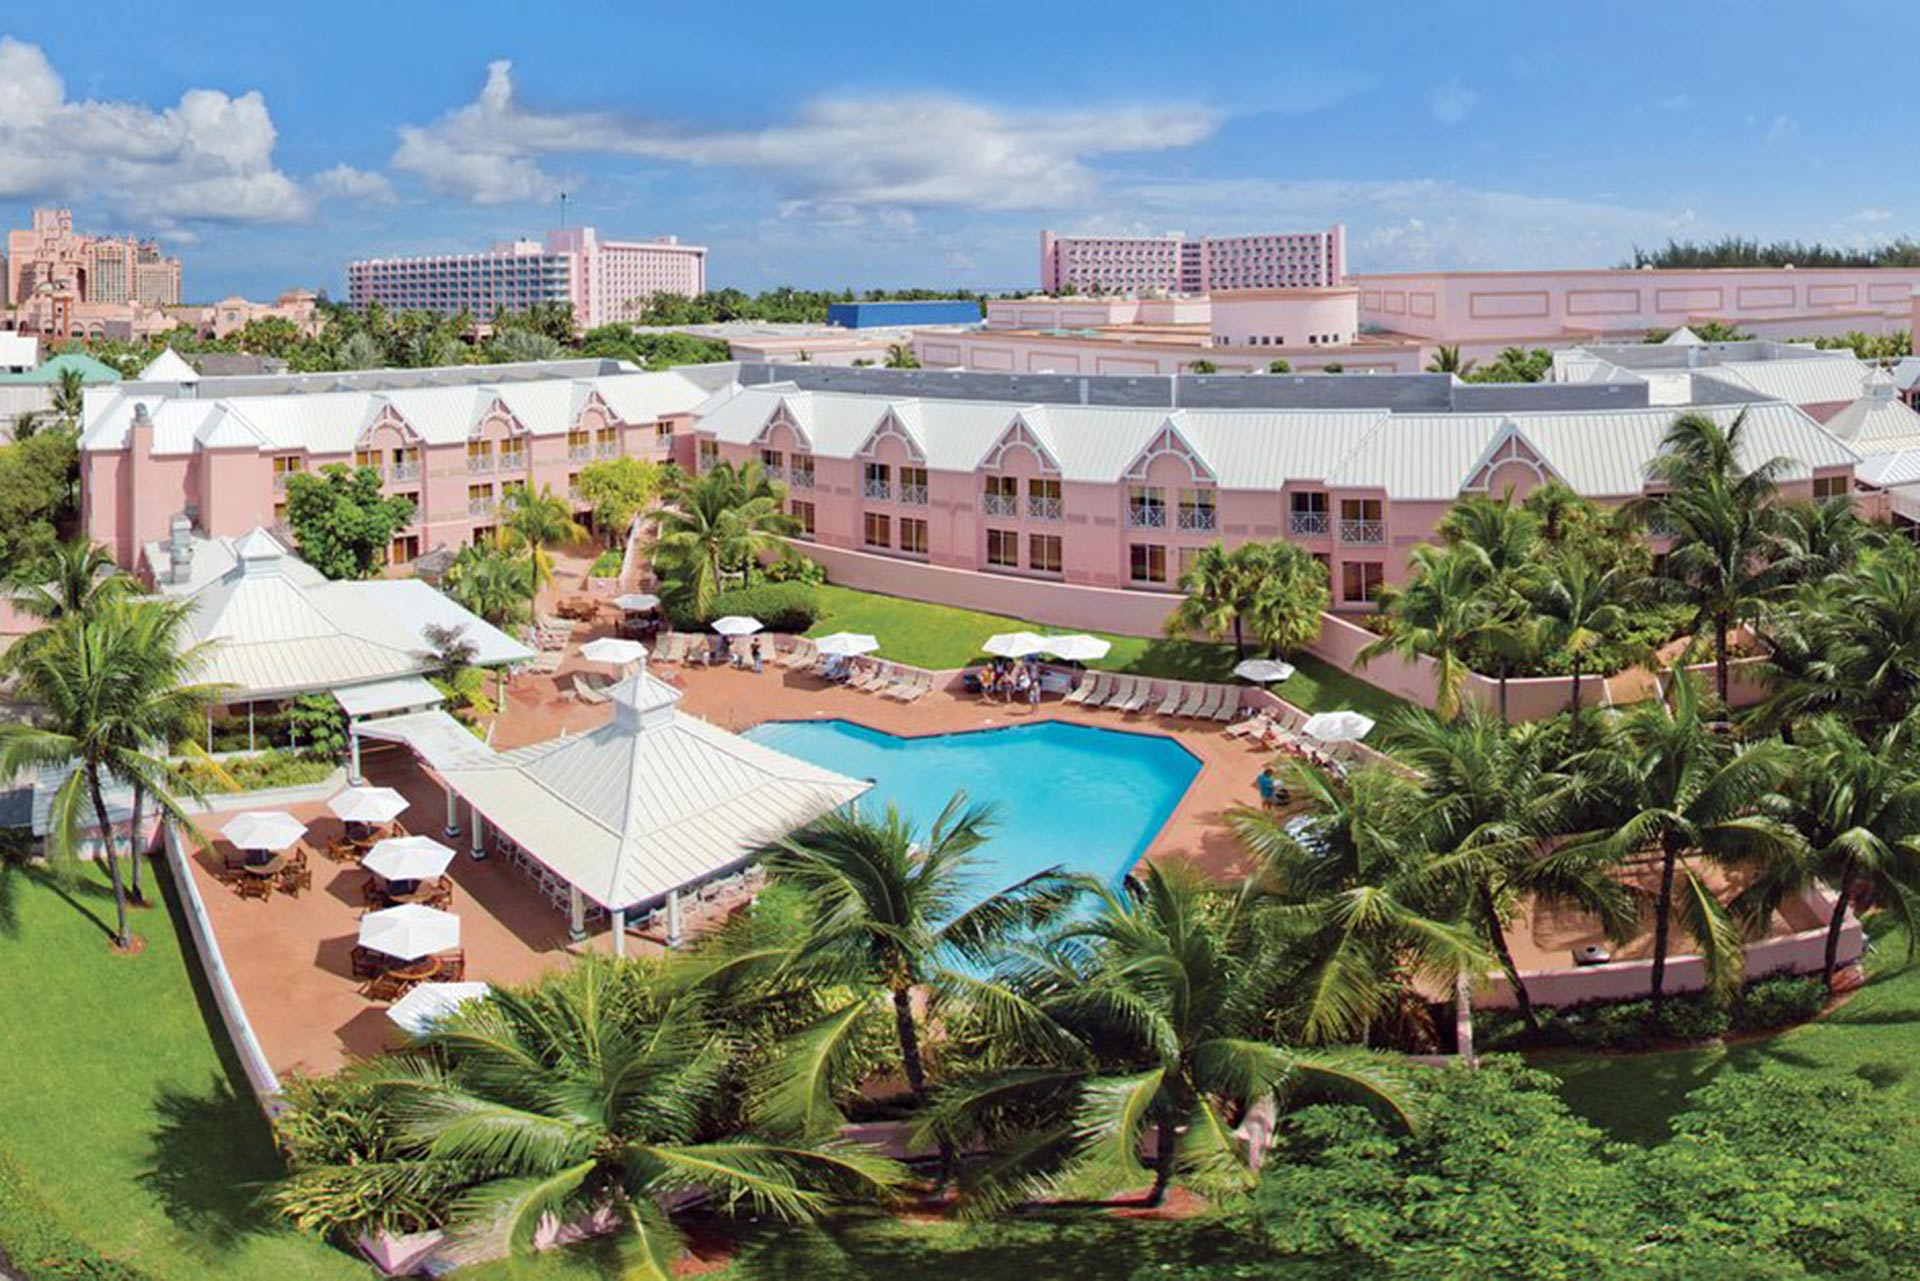 Comfort Suites Paradise Island in the Bahamas; Photo Courtesy of Comfort Suites Paradise Island